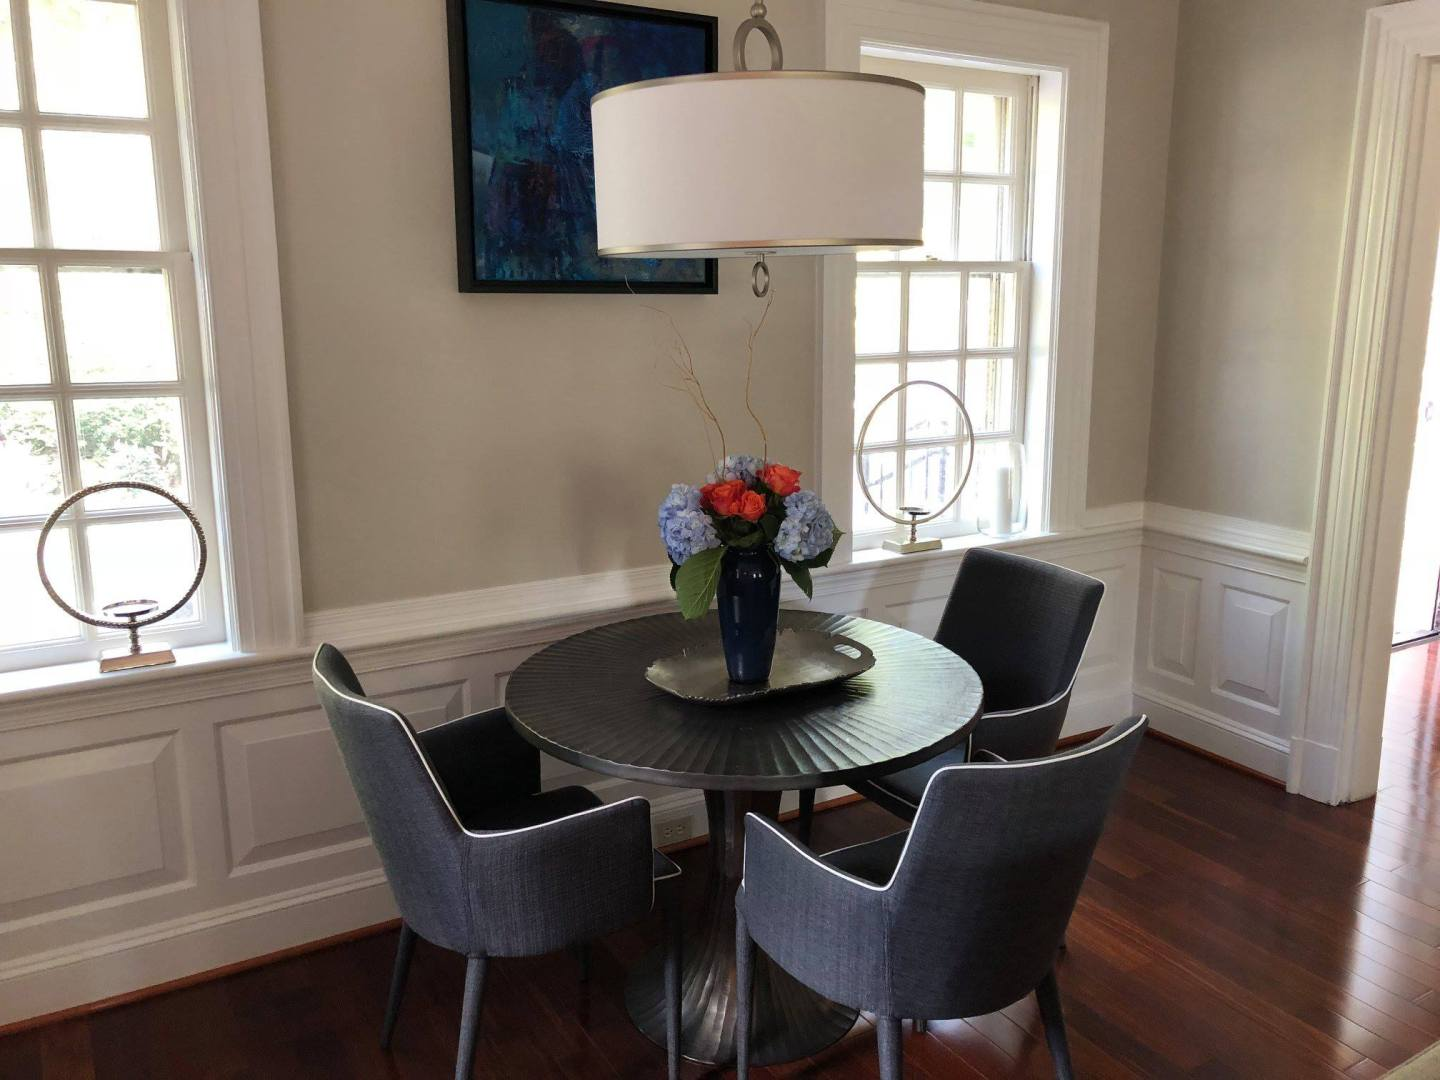 Livingroomsittingarea Black-Owned Bed & Breakfast in Maryland: How to Host an Event in an Intimate Venue